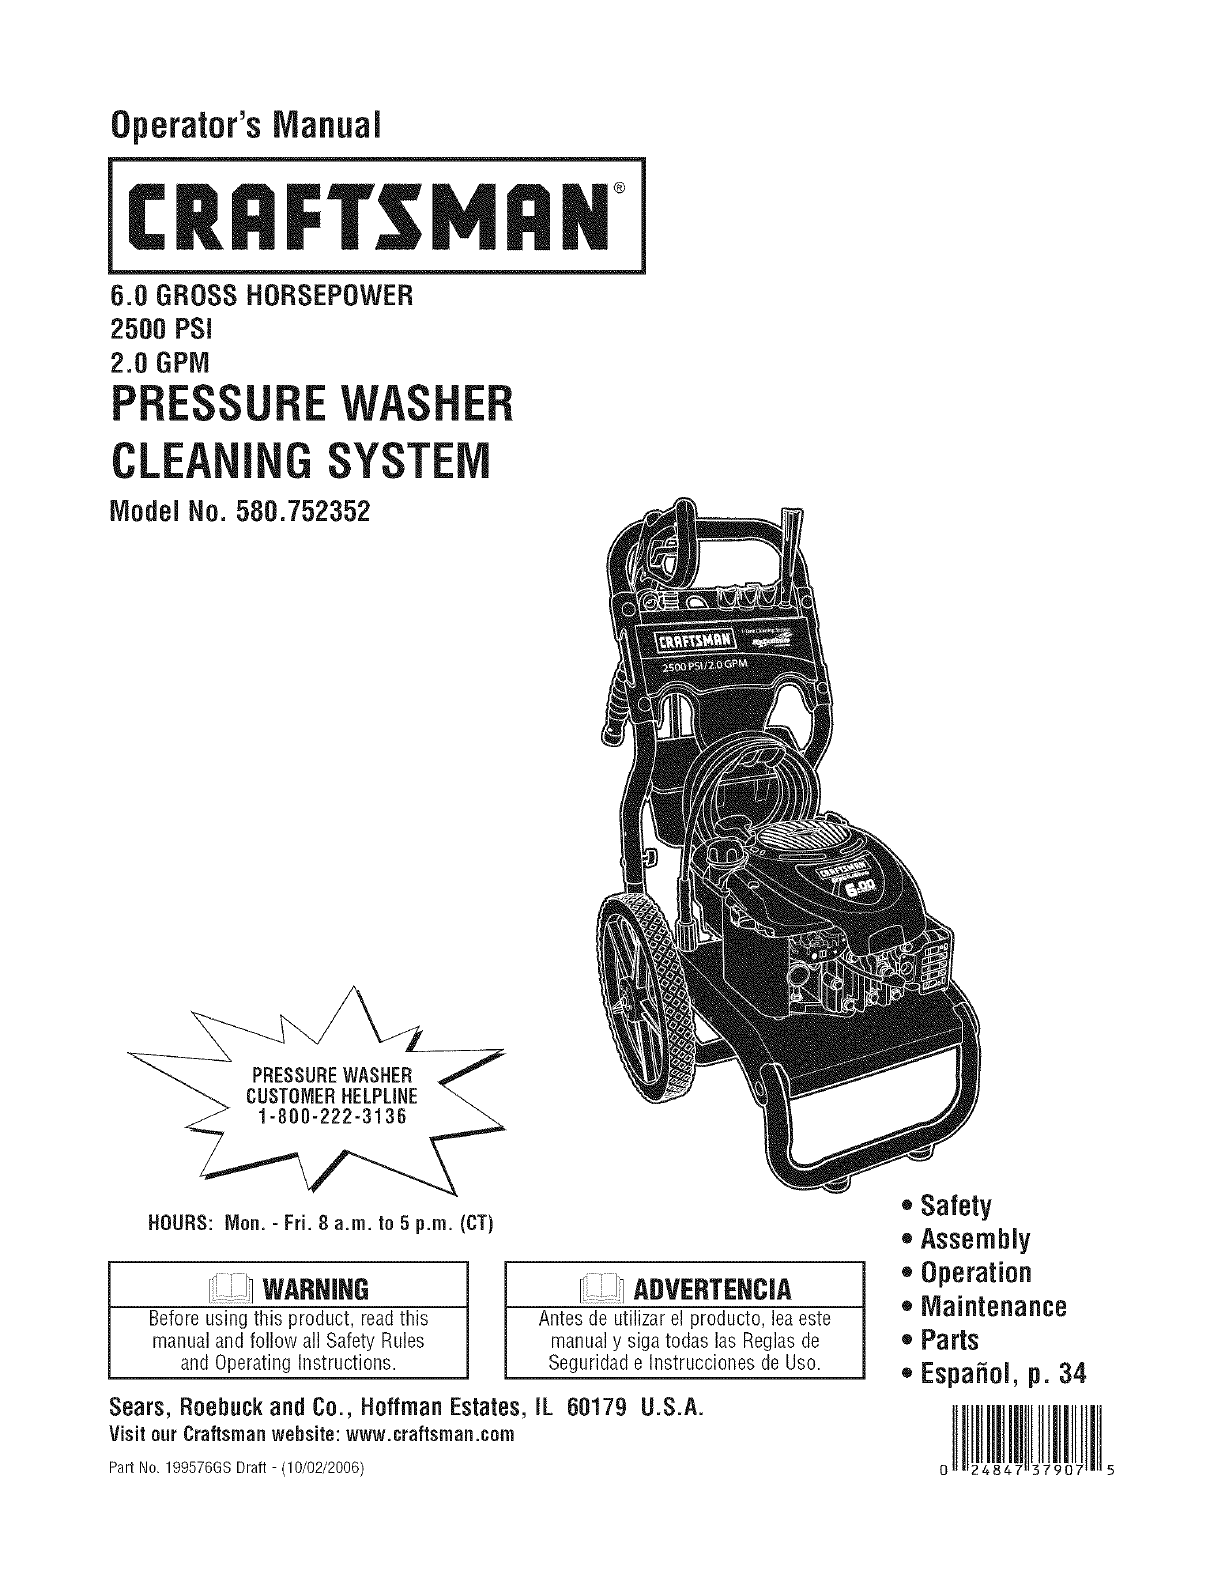 Craftsman 580752352 User Manual PRESSURE WASHER Manuals